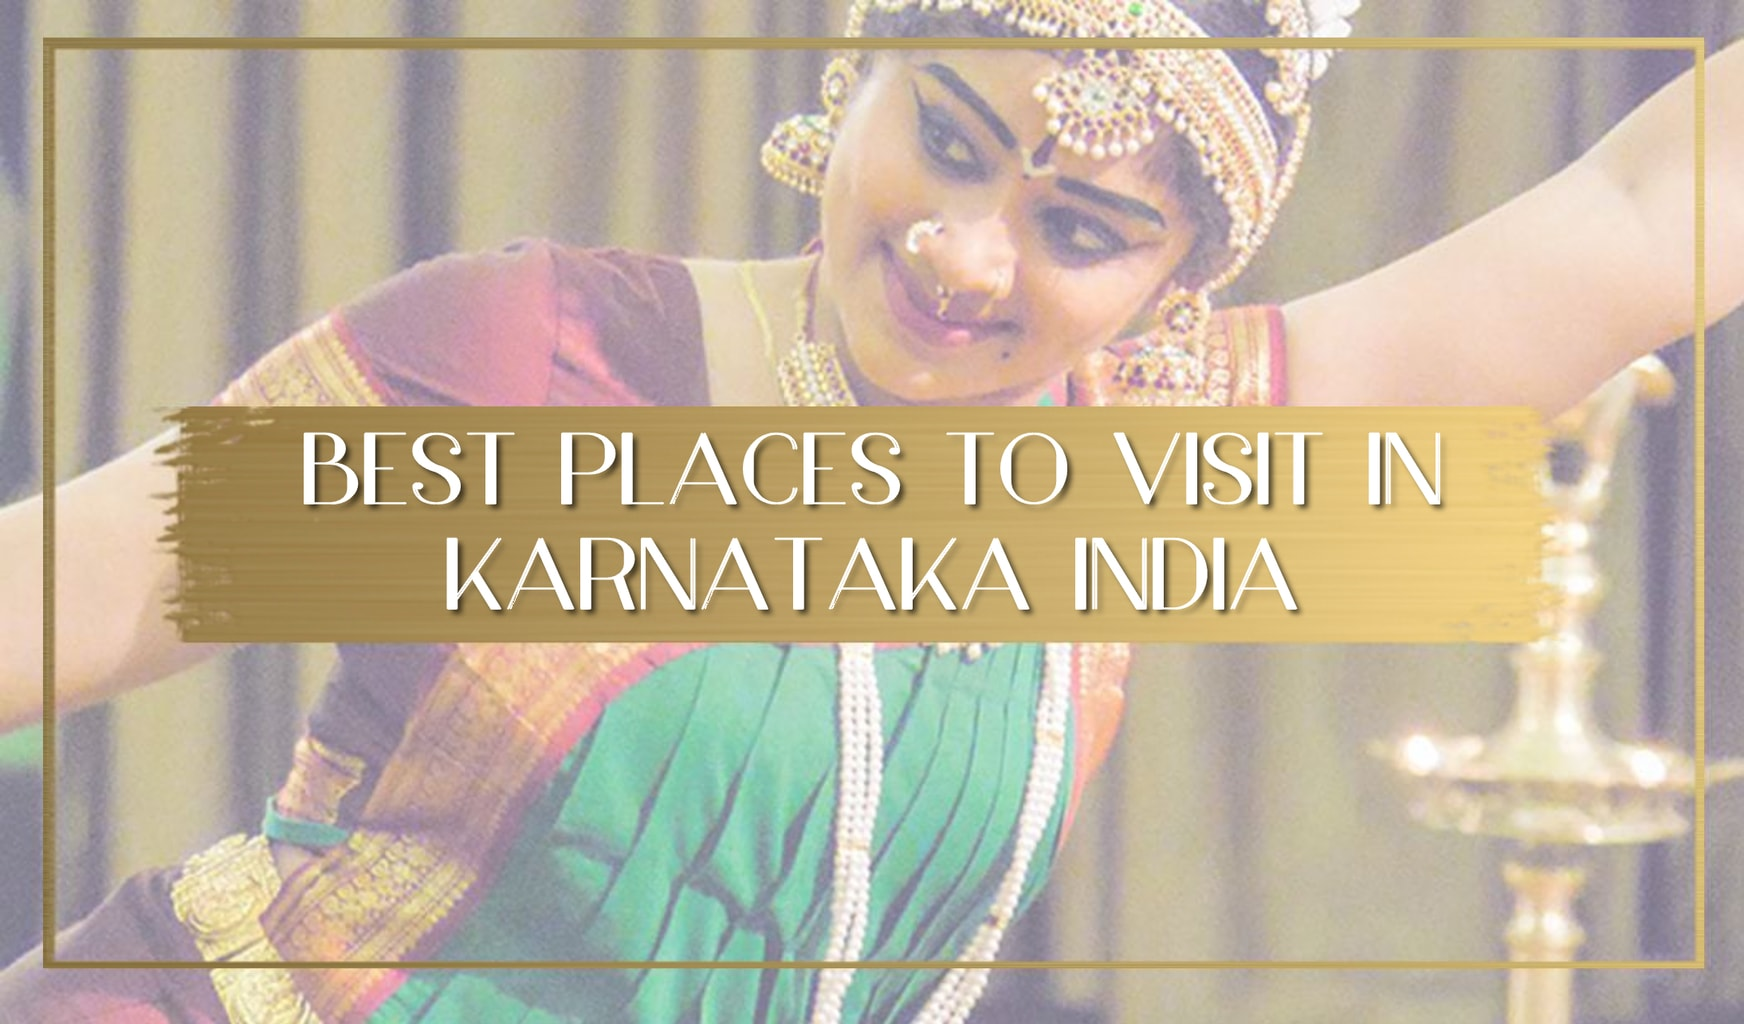 Best tourist places in Karnataka India main